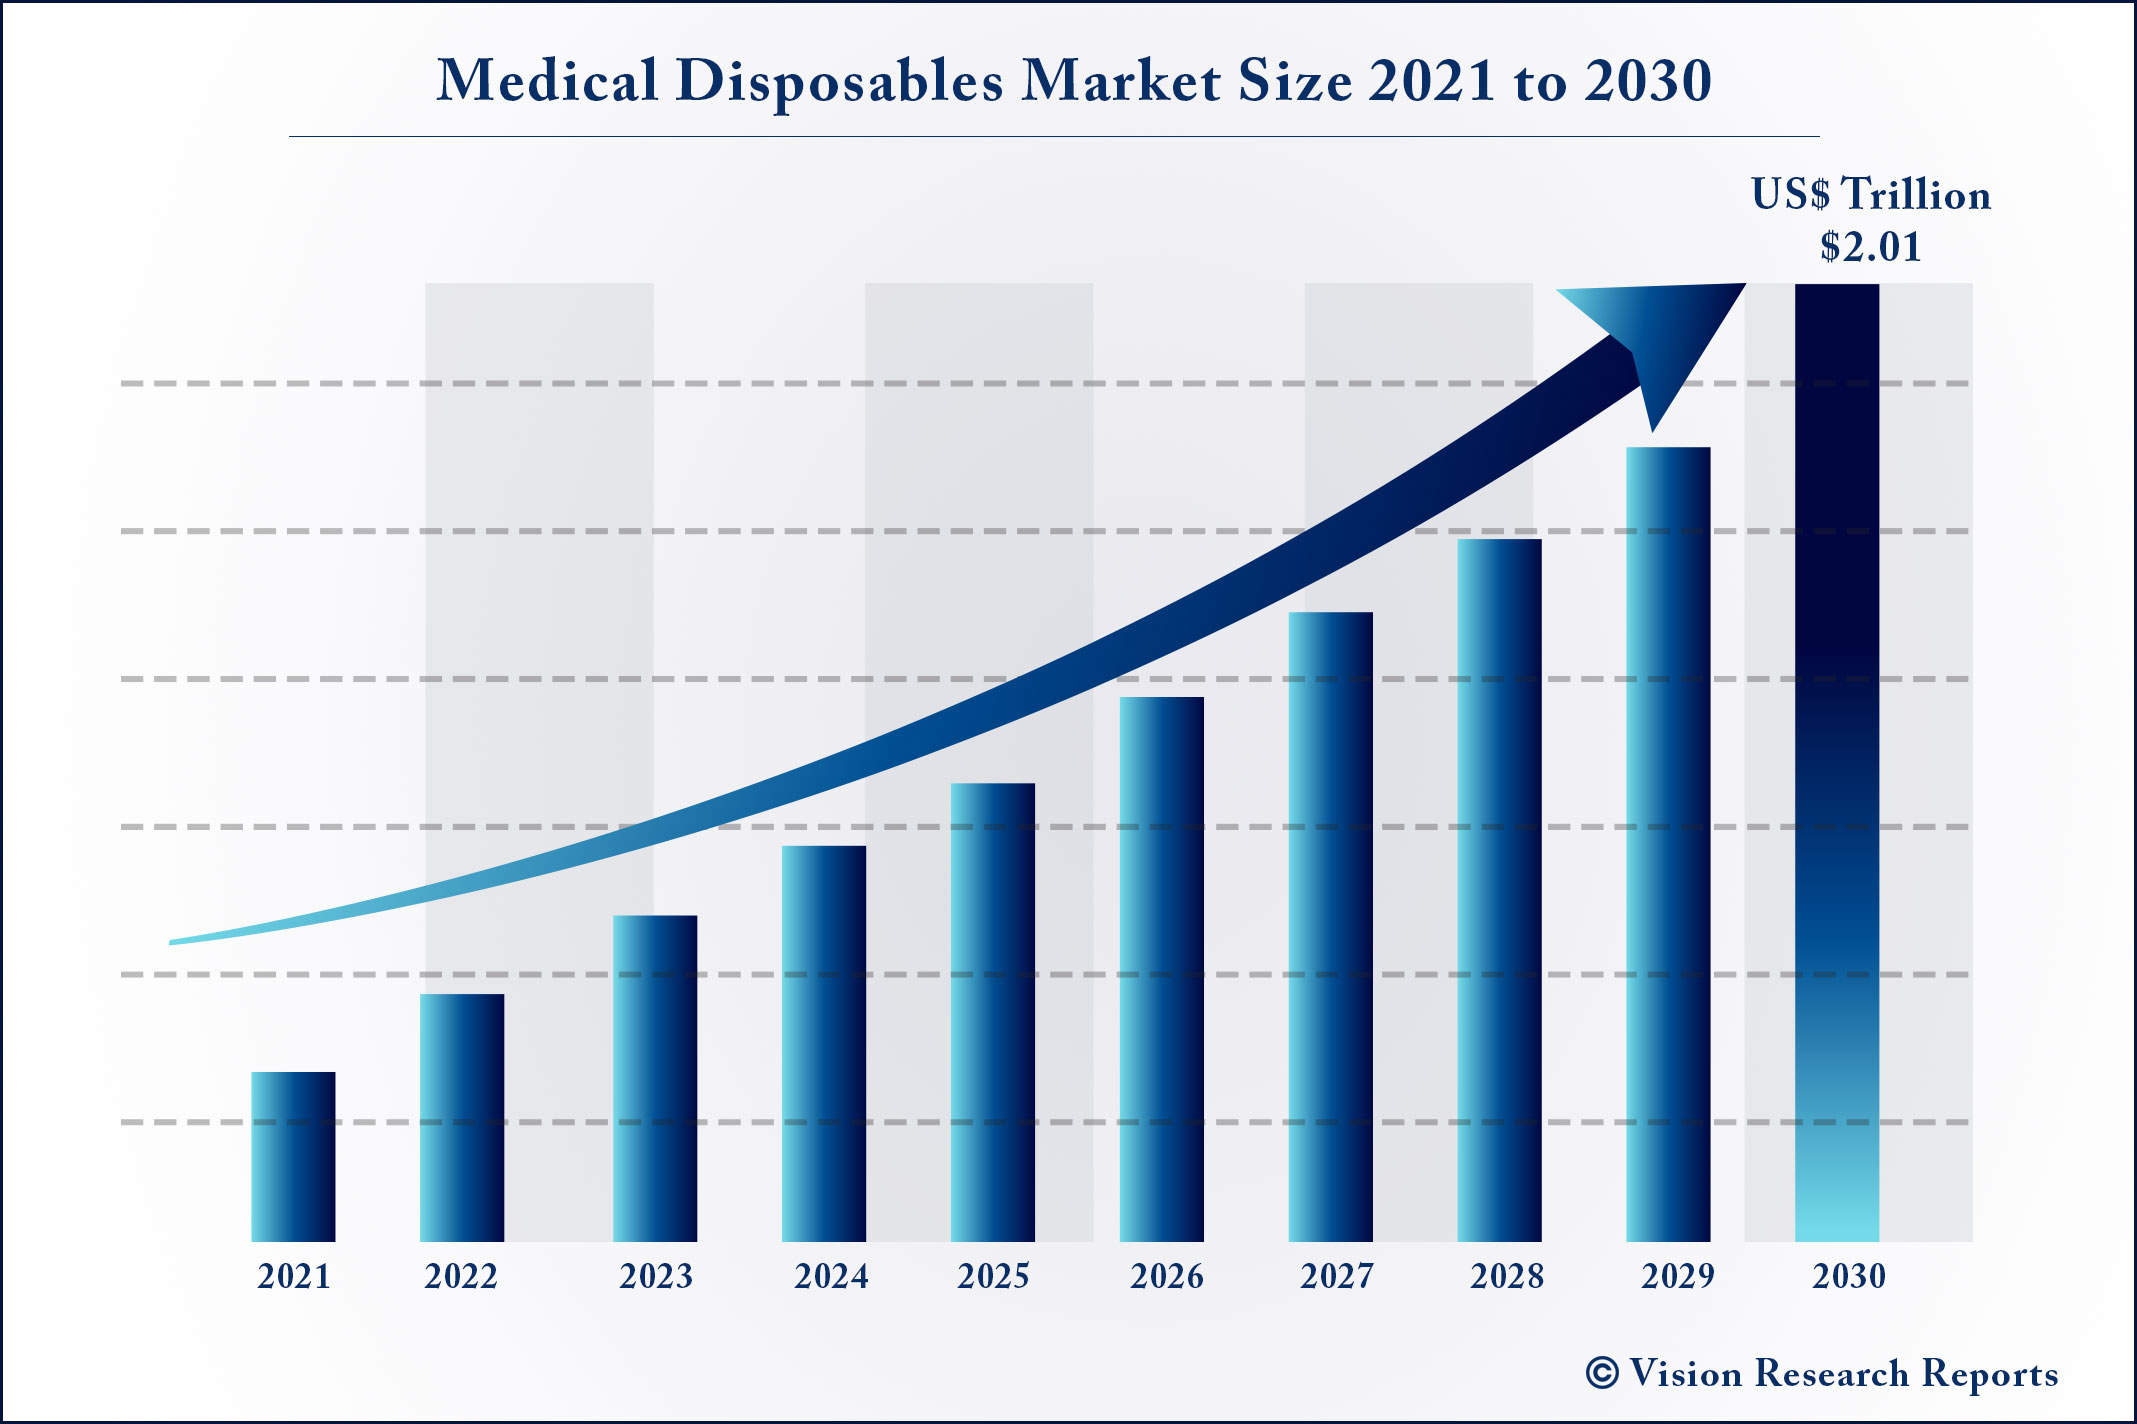 Medical Disposables Market Size 2021 to 2030